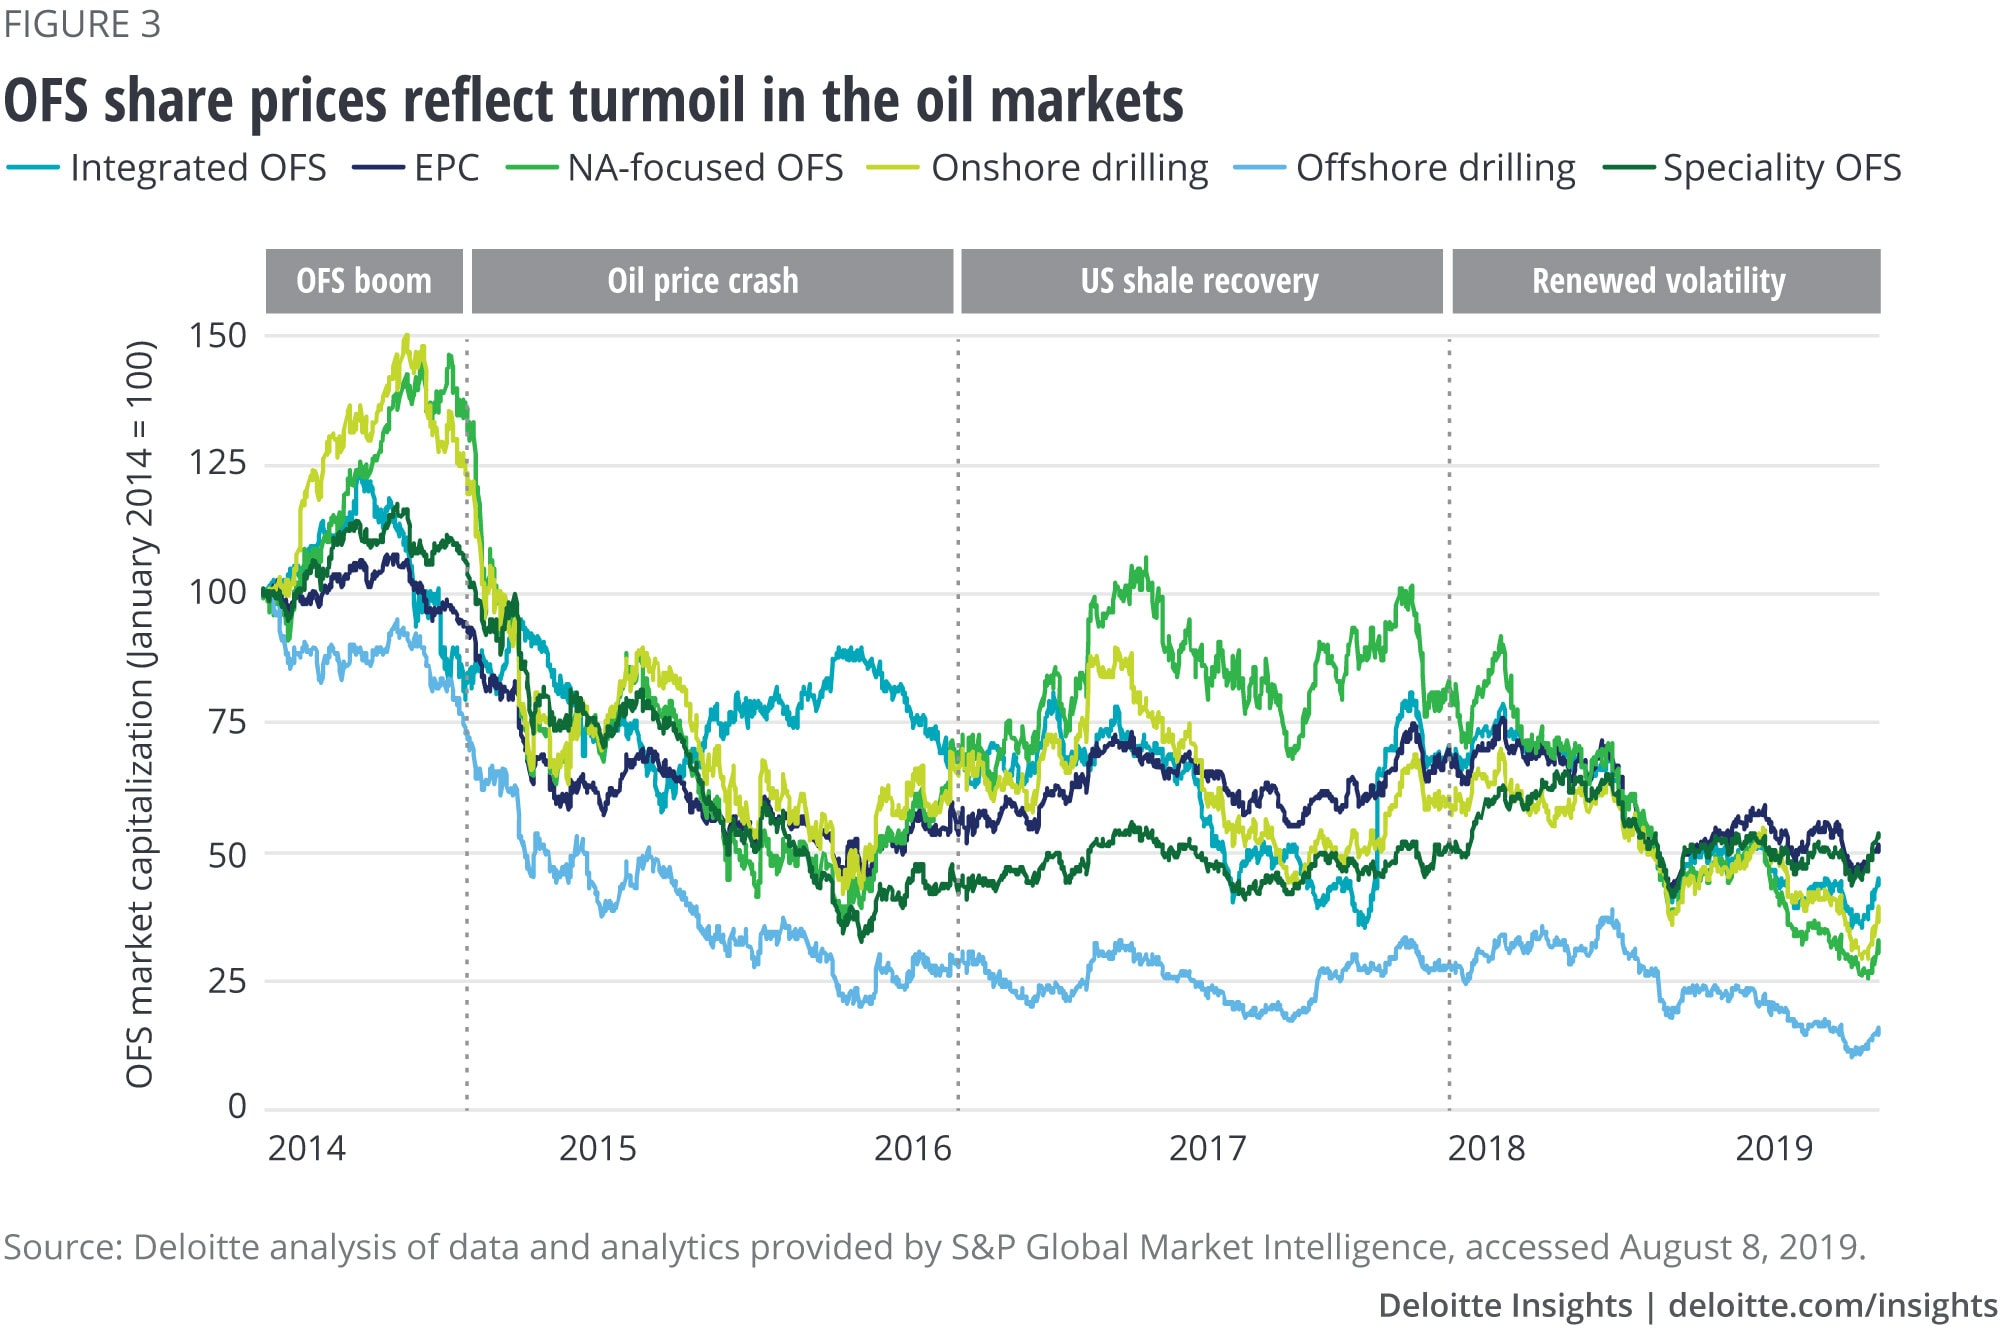 OFS share prices reflect turmoil in the oil markets